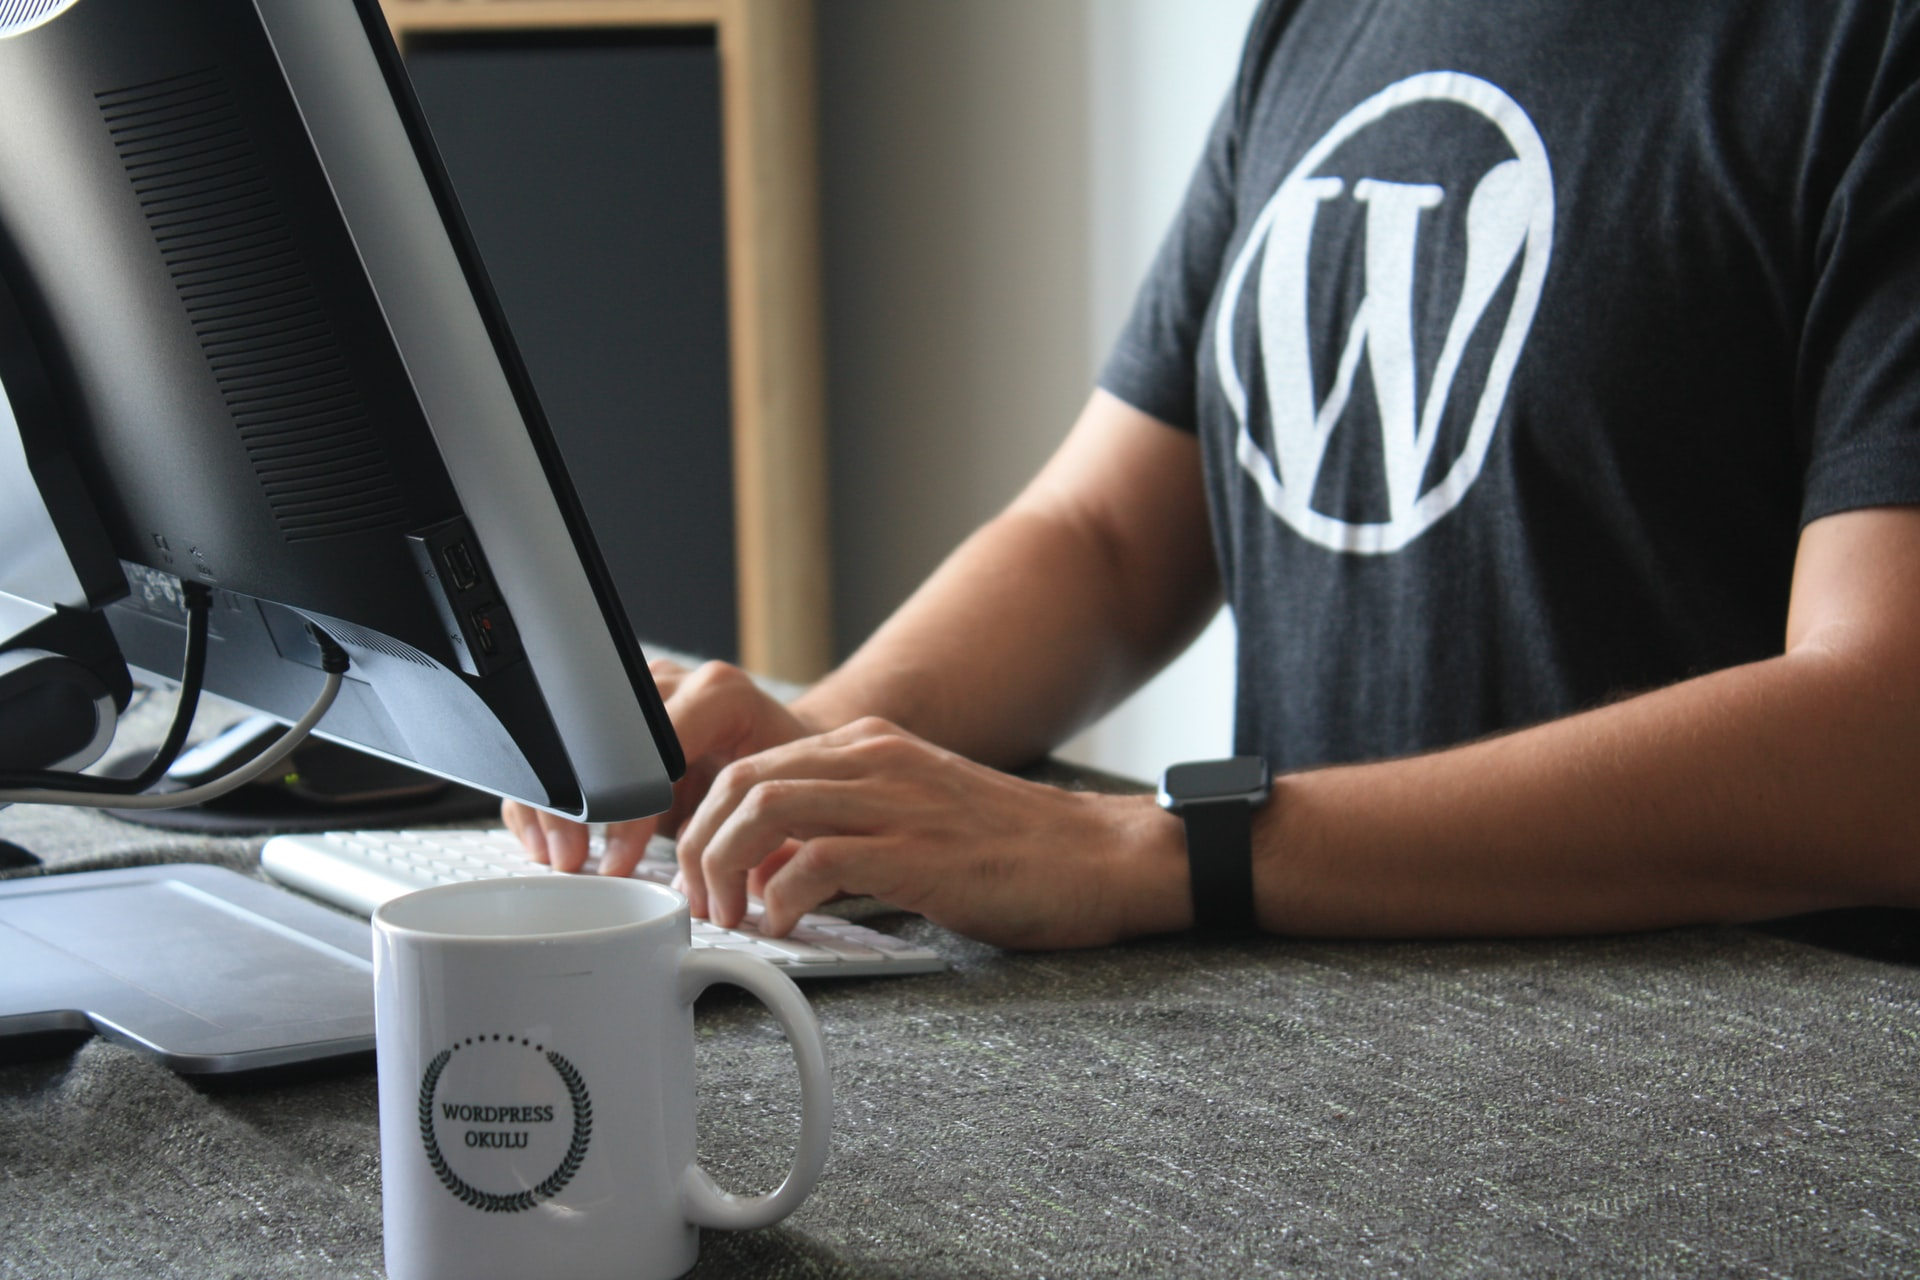 Un homme portant un tee-shirt WordPress